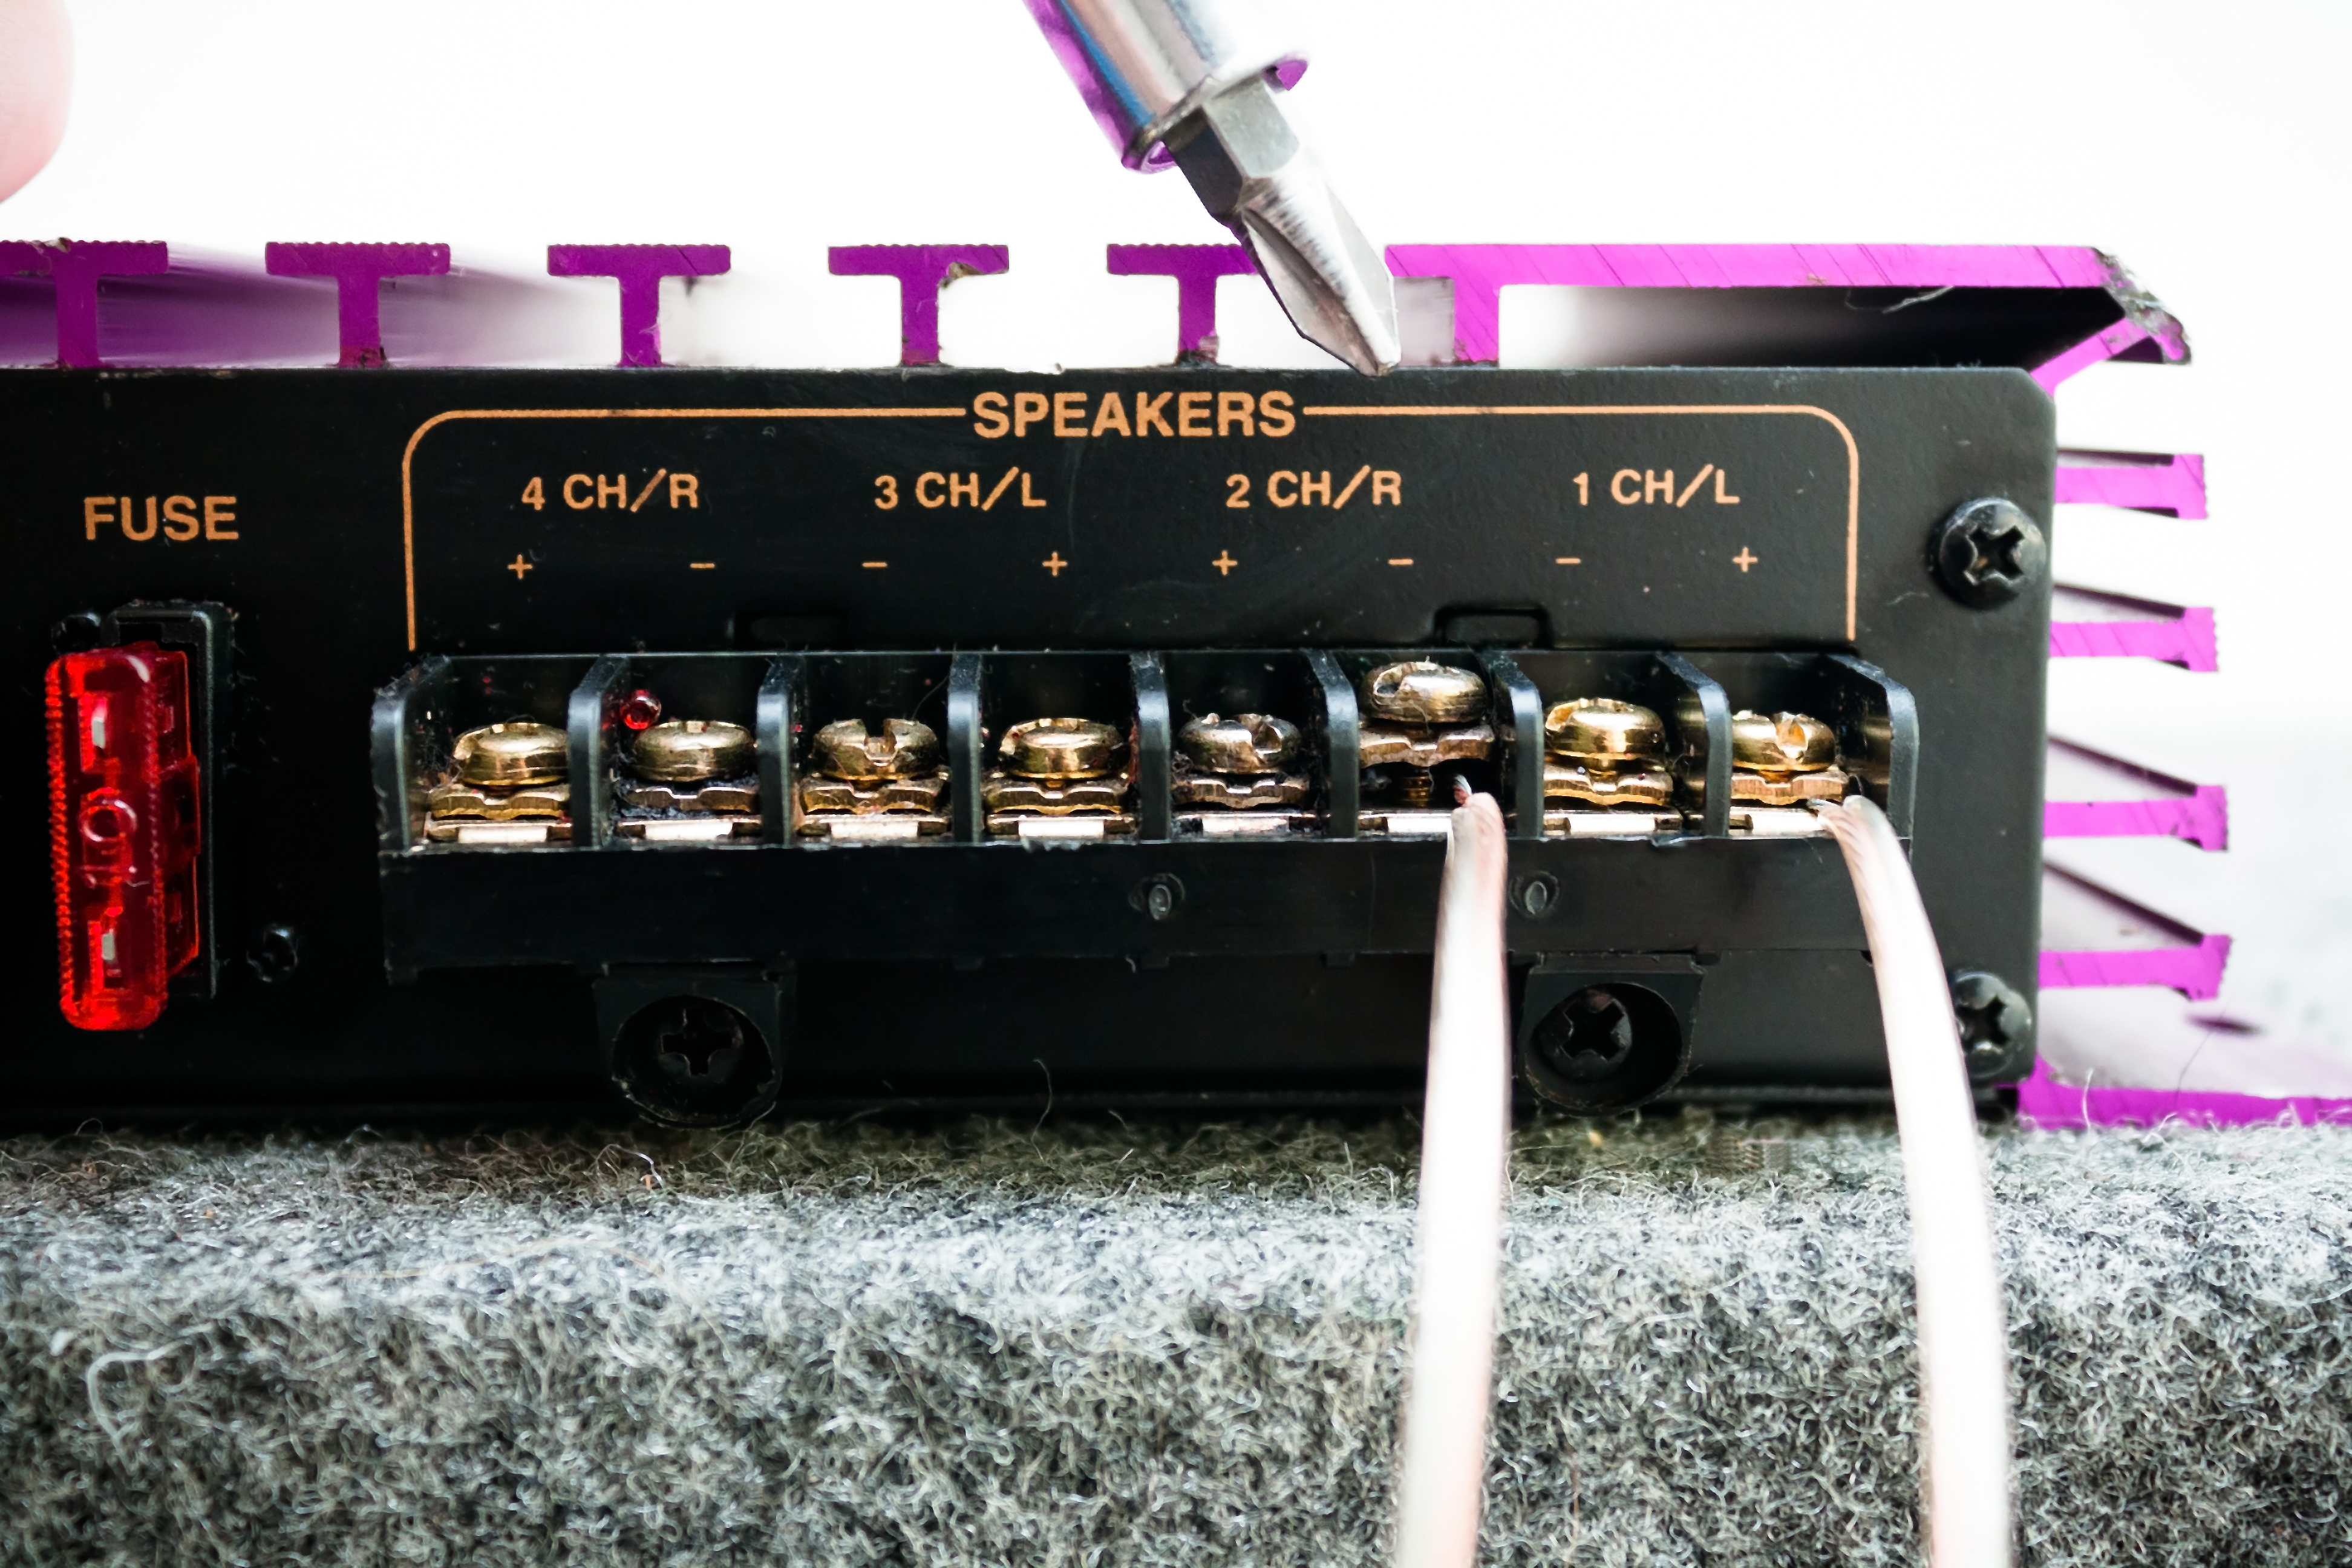 How to Bridge a 4 Channel Amp | It Still Works